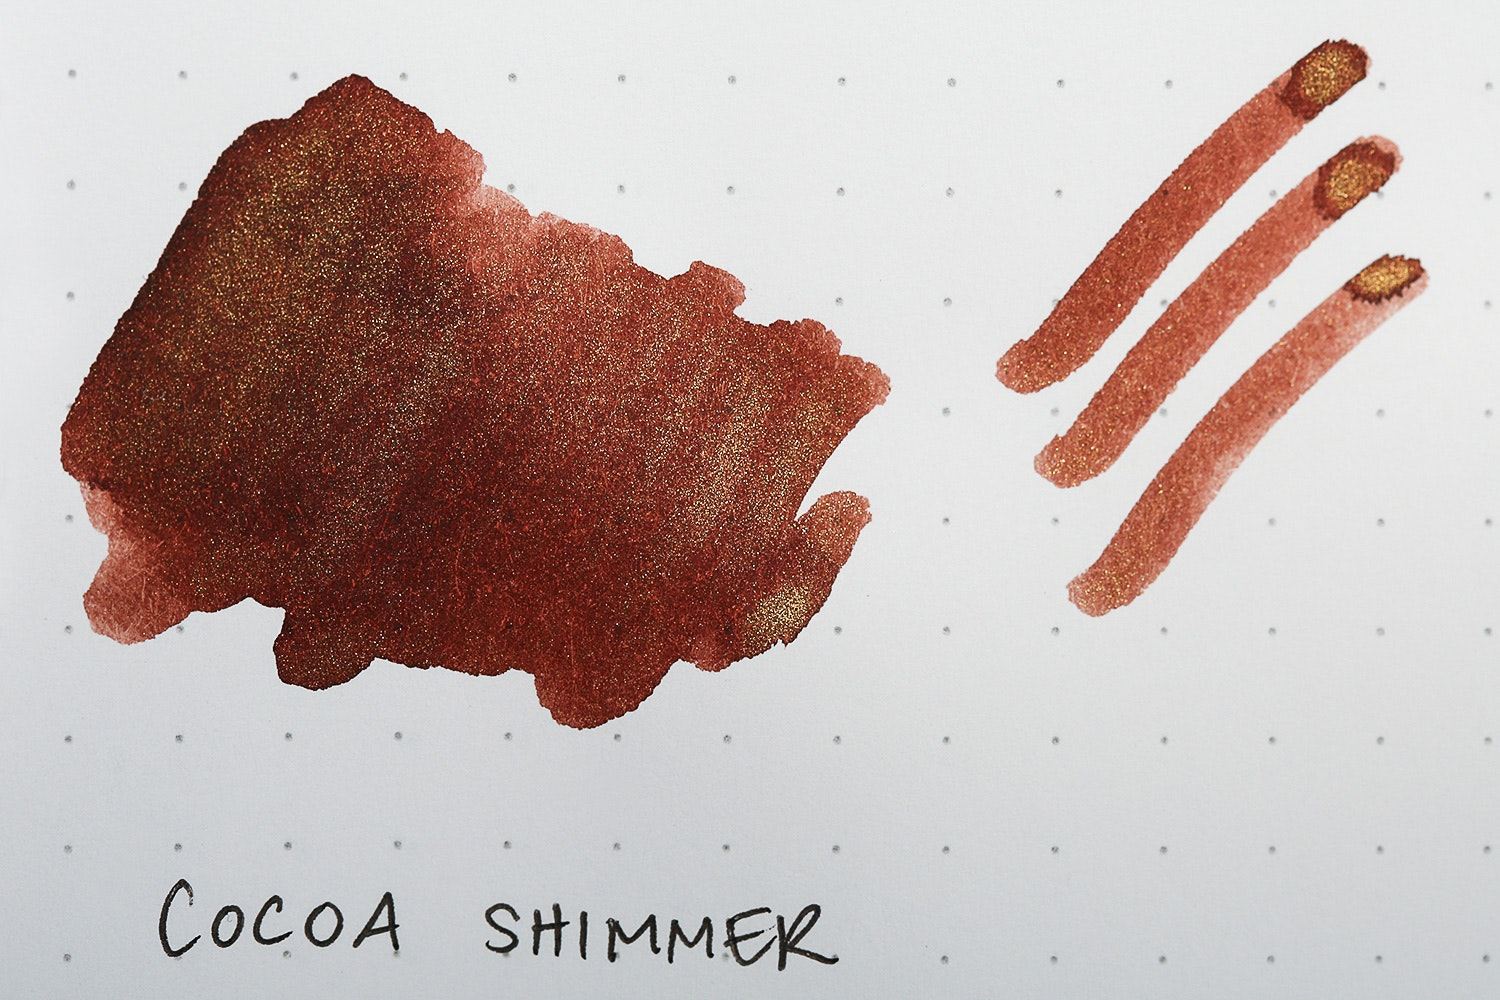 Cocoa Shimmer